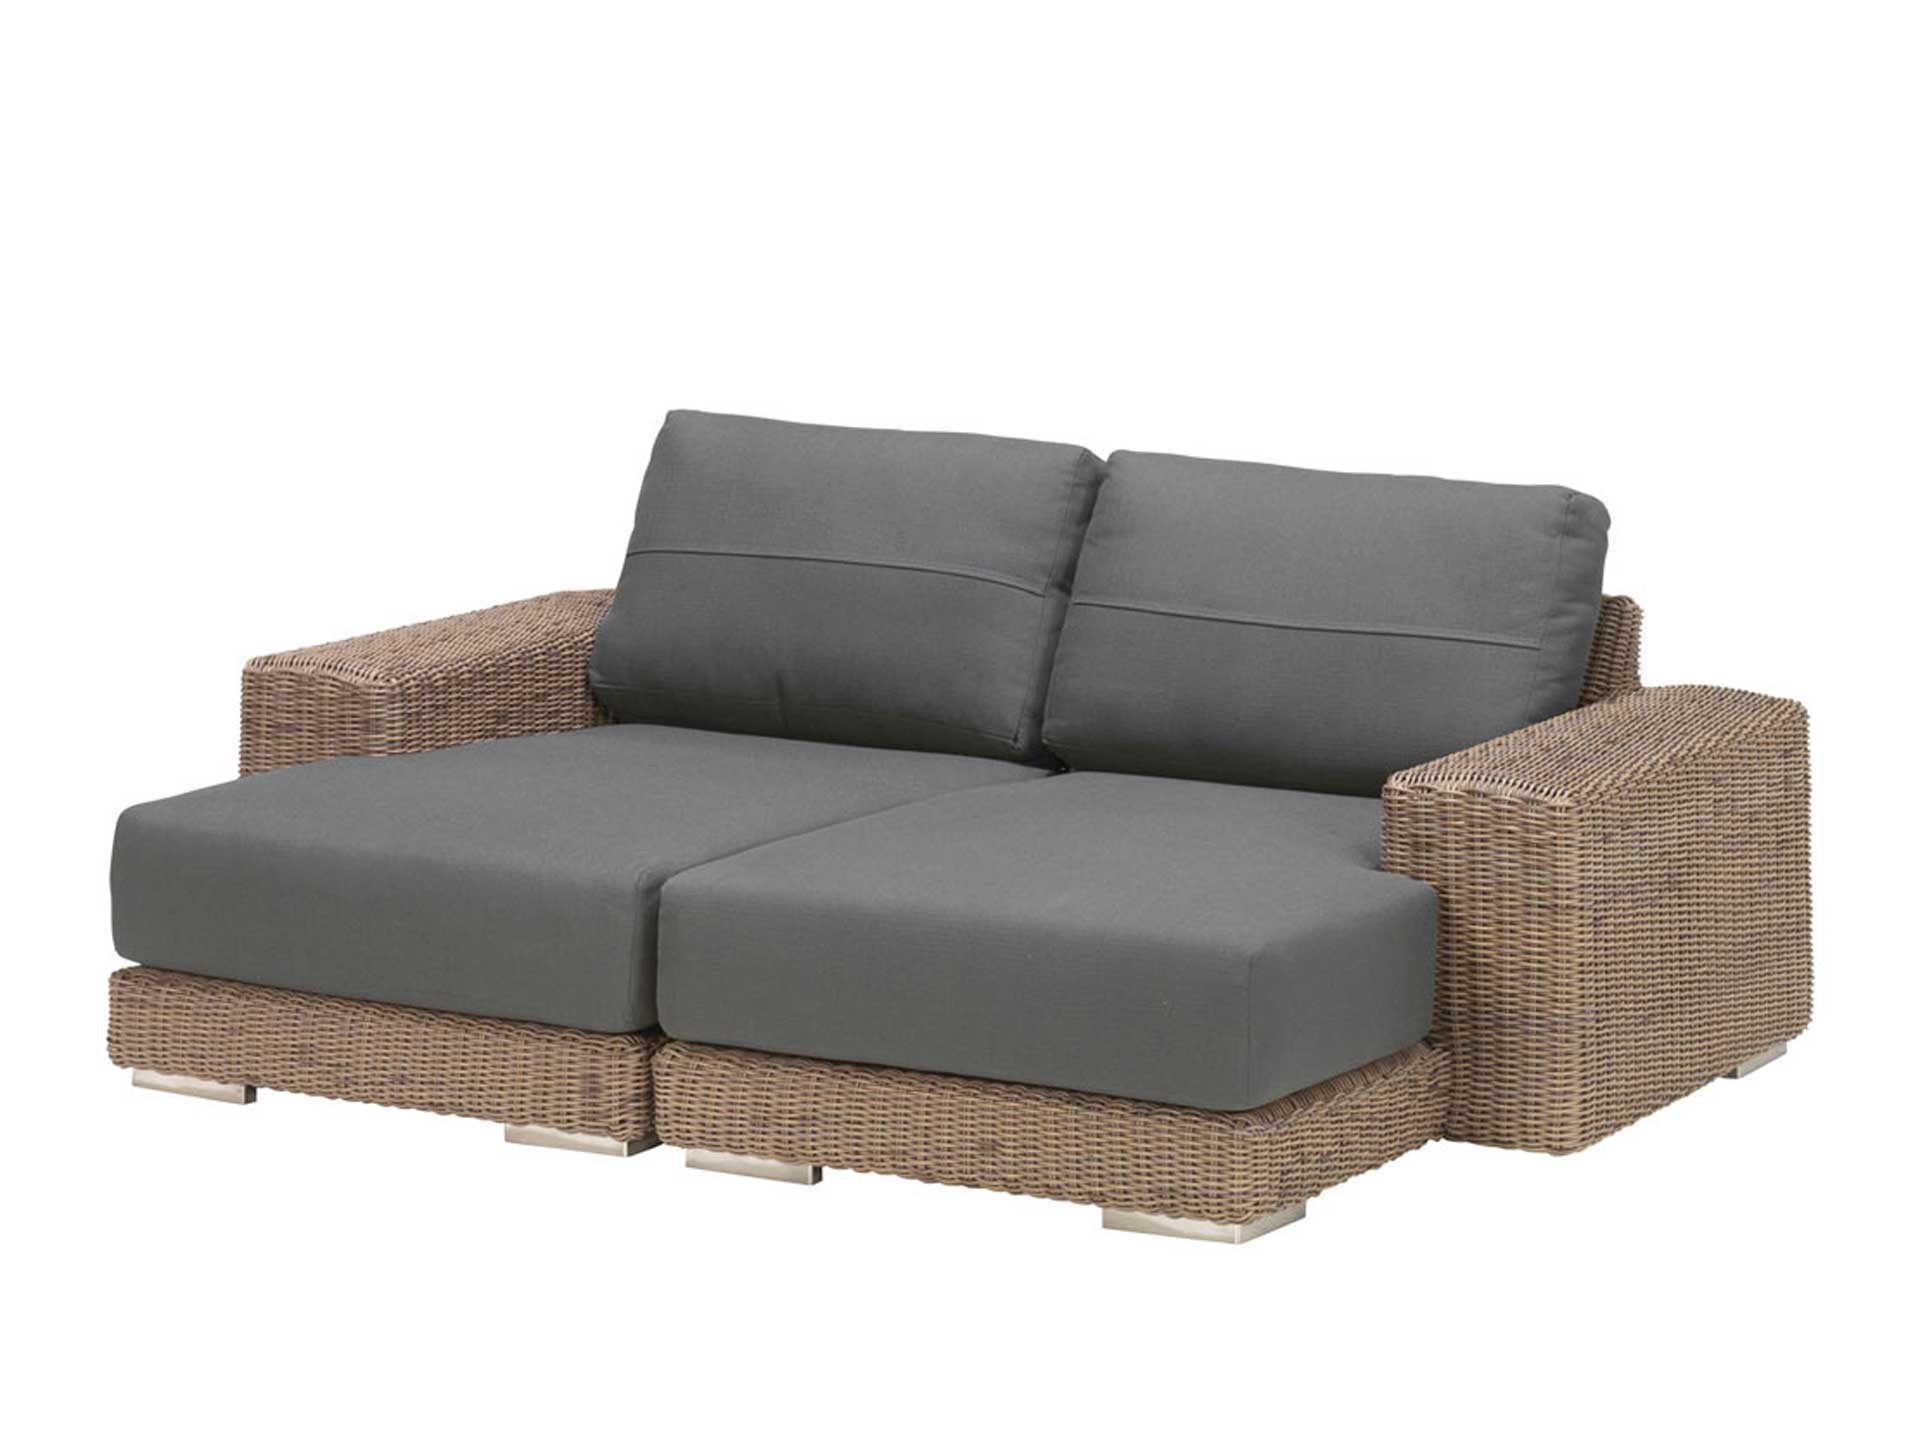 Kingston chaise Lounge Set